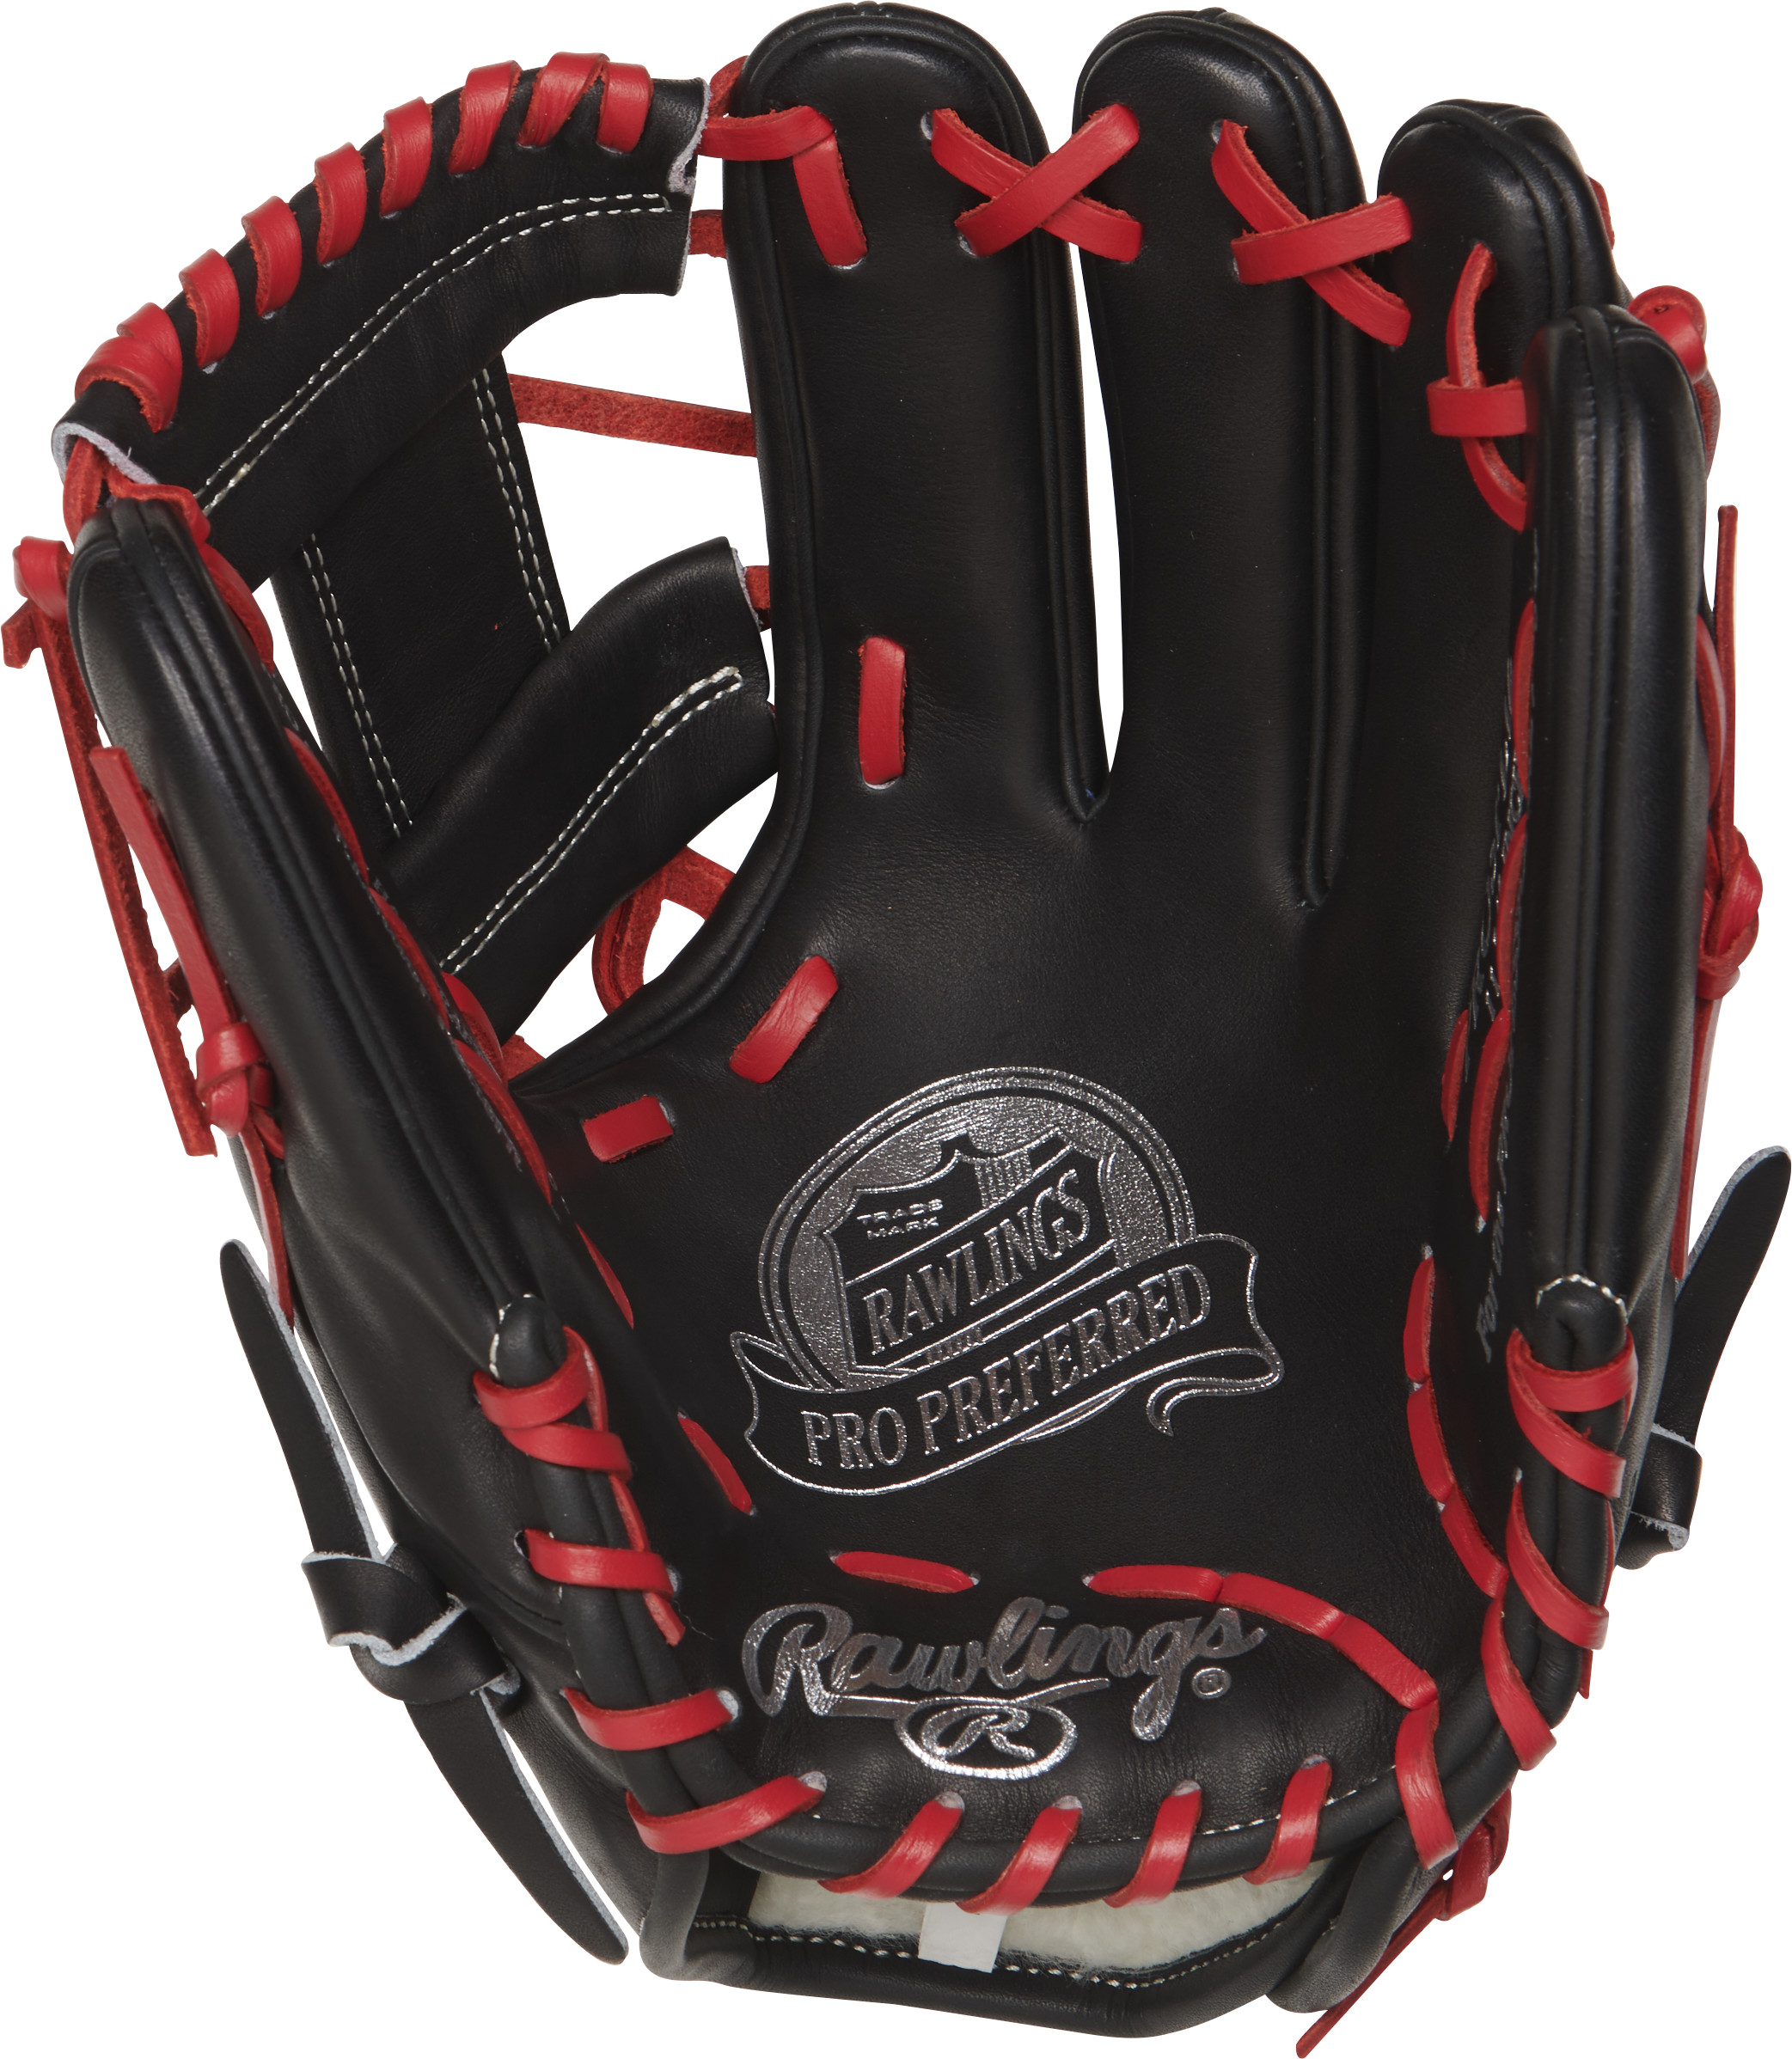 http://www.bestbatdeals.com/images/gloves/rawlings/PROSFL12-1.jpg